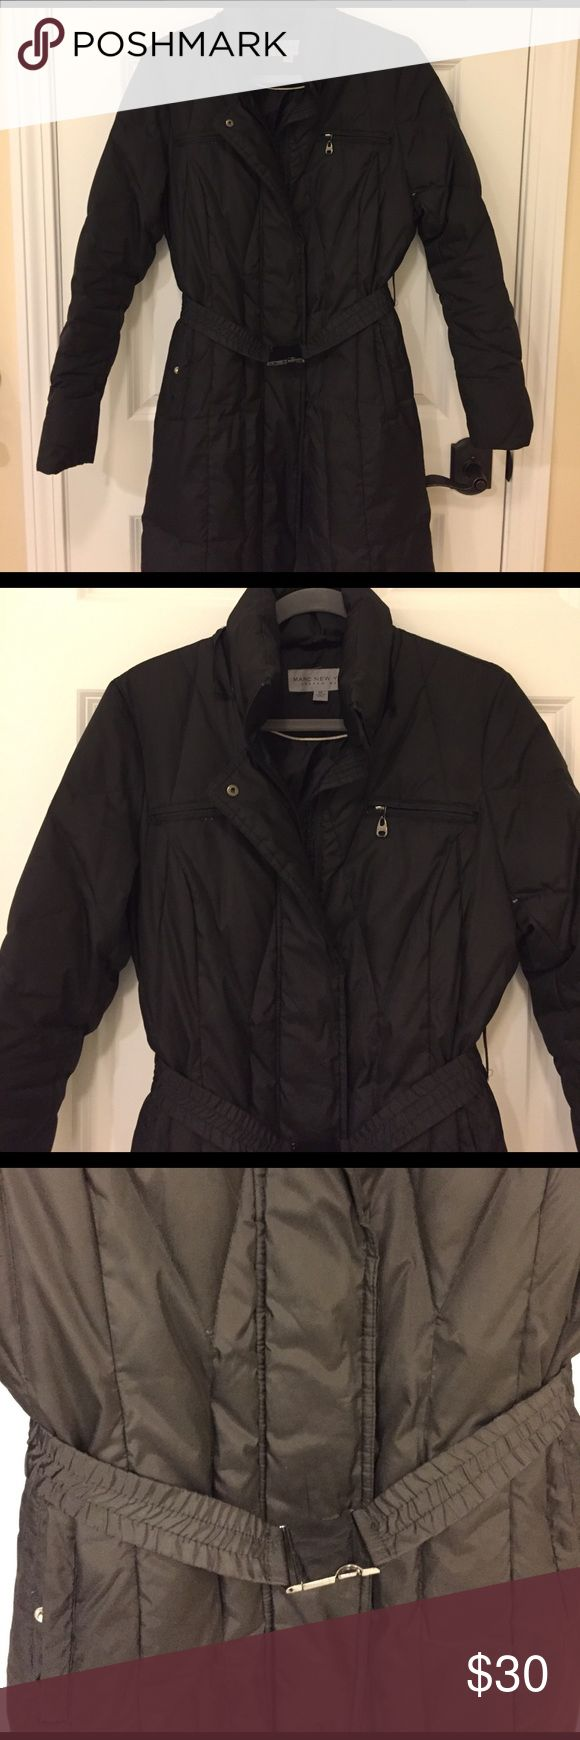 Womens puffer coat Black womens puffer coat.  Zipper and snap closure with elastic belt.  Flattering shape!  Approx 39.5 inches from top of shoulder to bottom of coat.  Hits just above knee.  Zipper needs to be repaired-priced accordingly. Andrew Marc Jackets & Coats Puffers